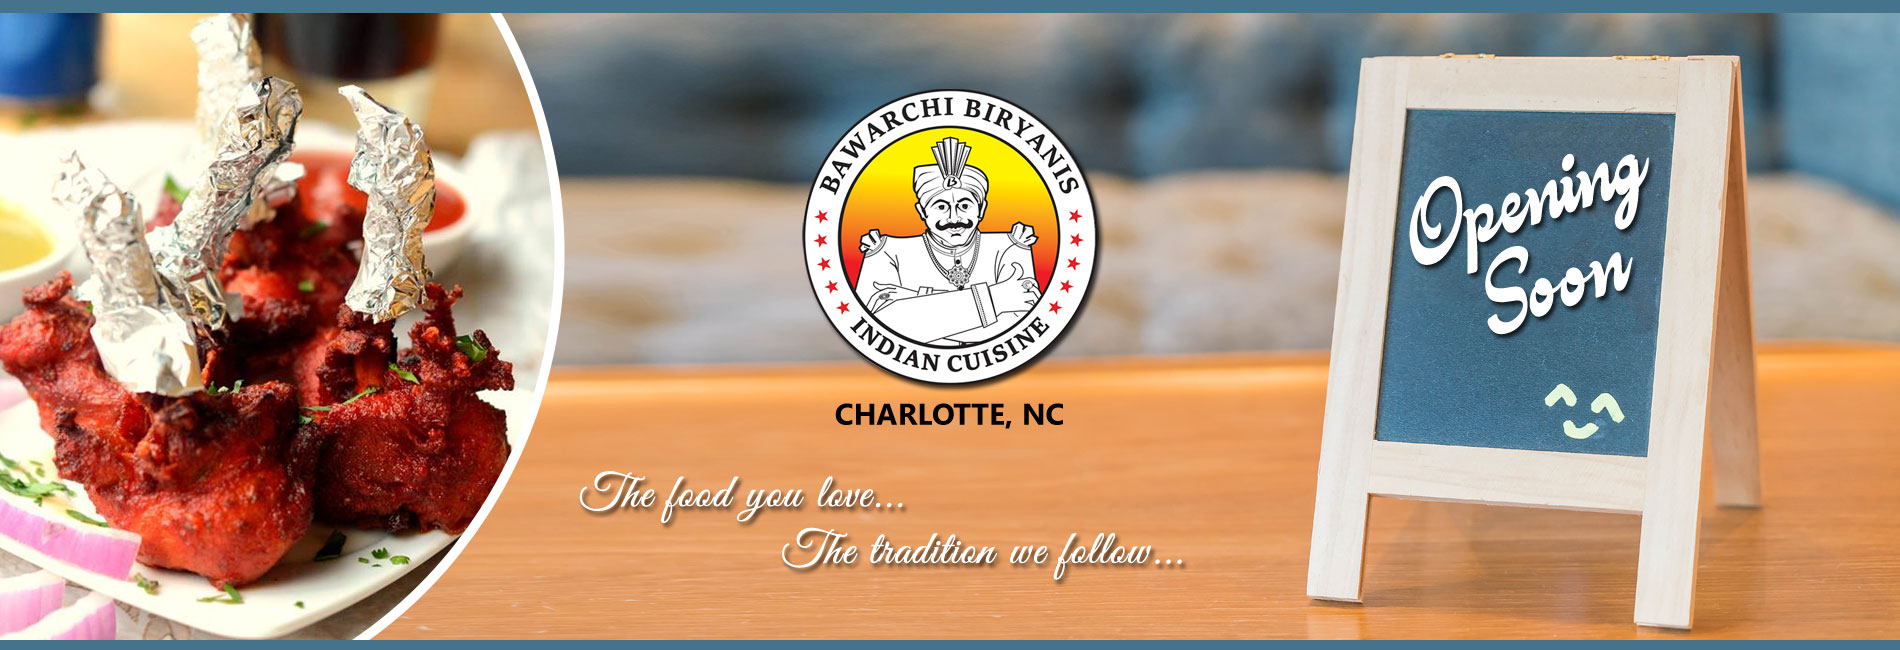 Bawarchi Charlotte, NC - Opening Soon